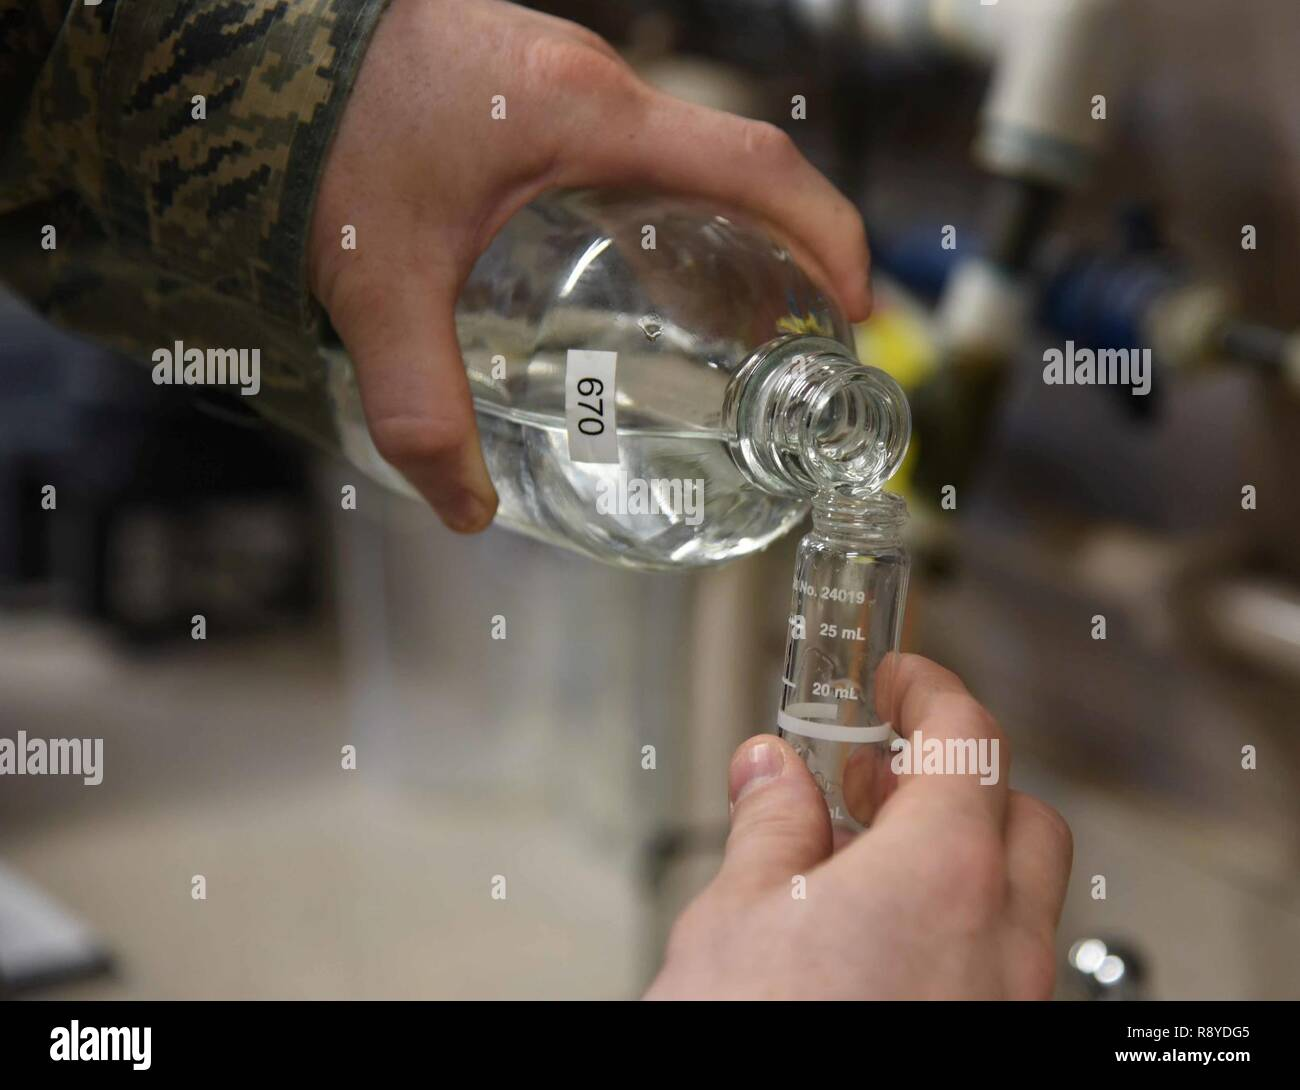 Staff Sgt. Shane Pentheny, 22nd Civil Engineer Squadron Water and Fuels System Maintenance technician, pours water into a small vial in order to test the chlorine, fluoride and pH levels March 9, 2017, at McConnell Air Force Base, Kan. If the samplings yield low readings, which sometimes happens in low-use buildings, the normal procedure is to flush the building until desired results are achieved. - Stock Image